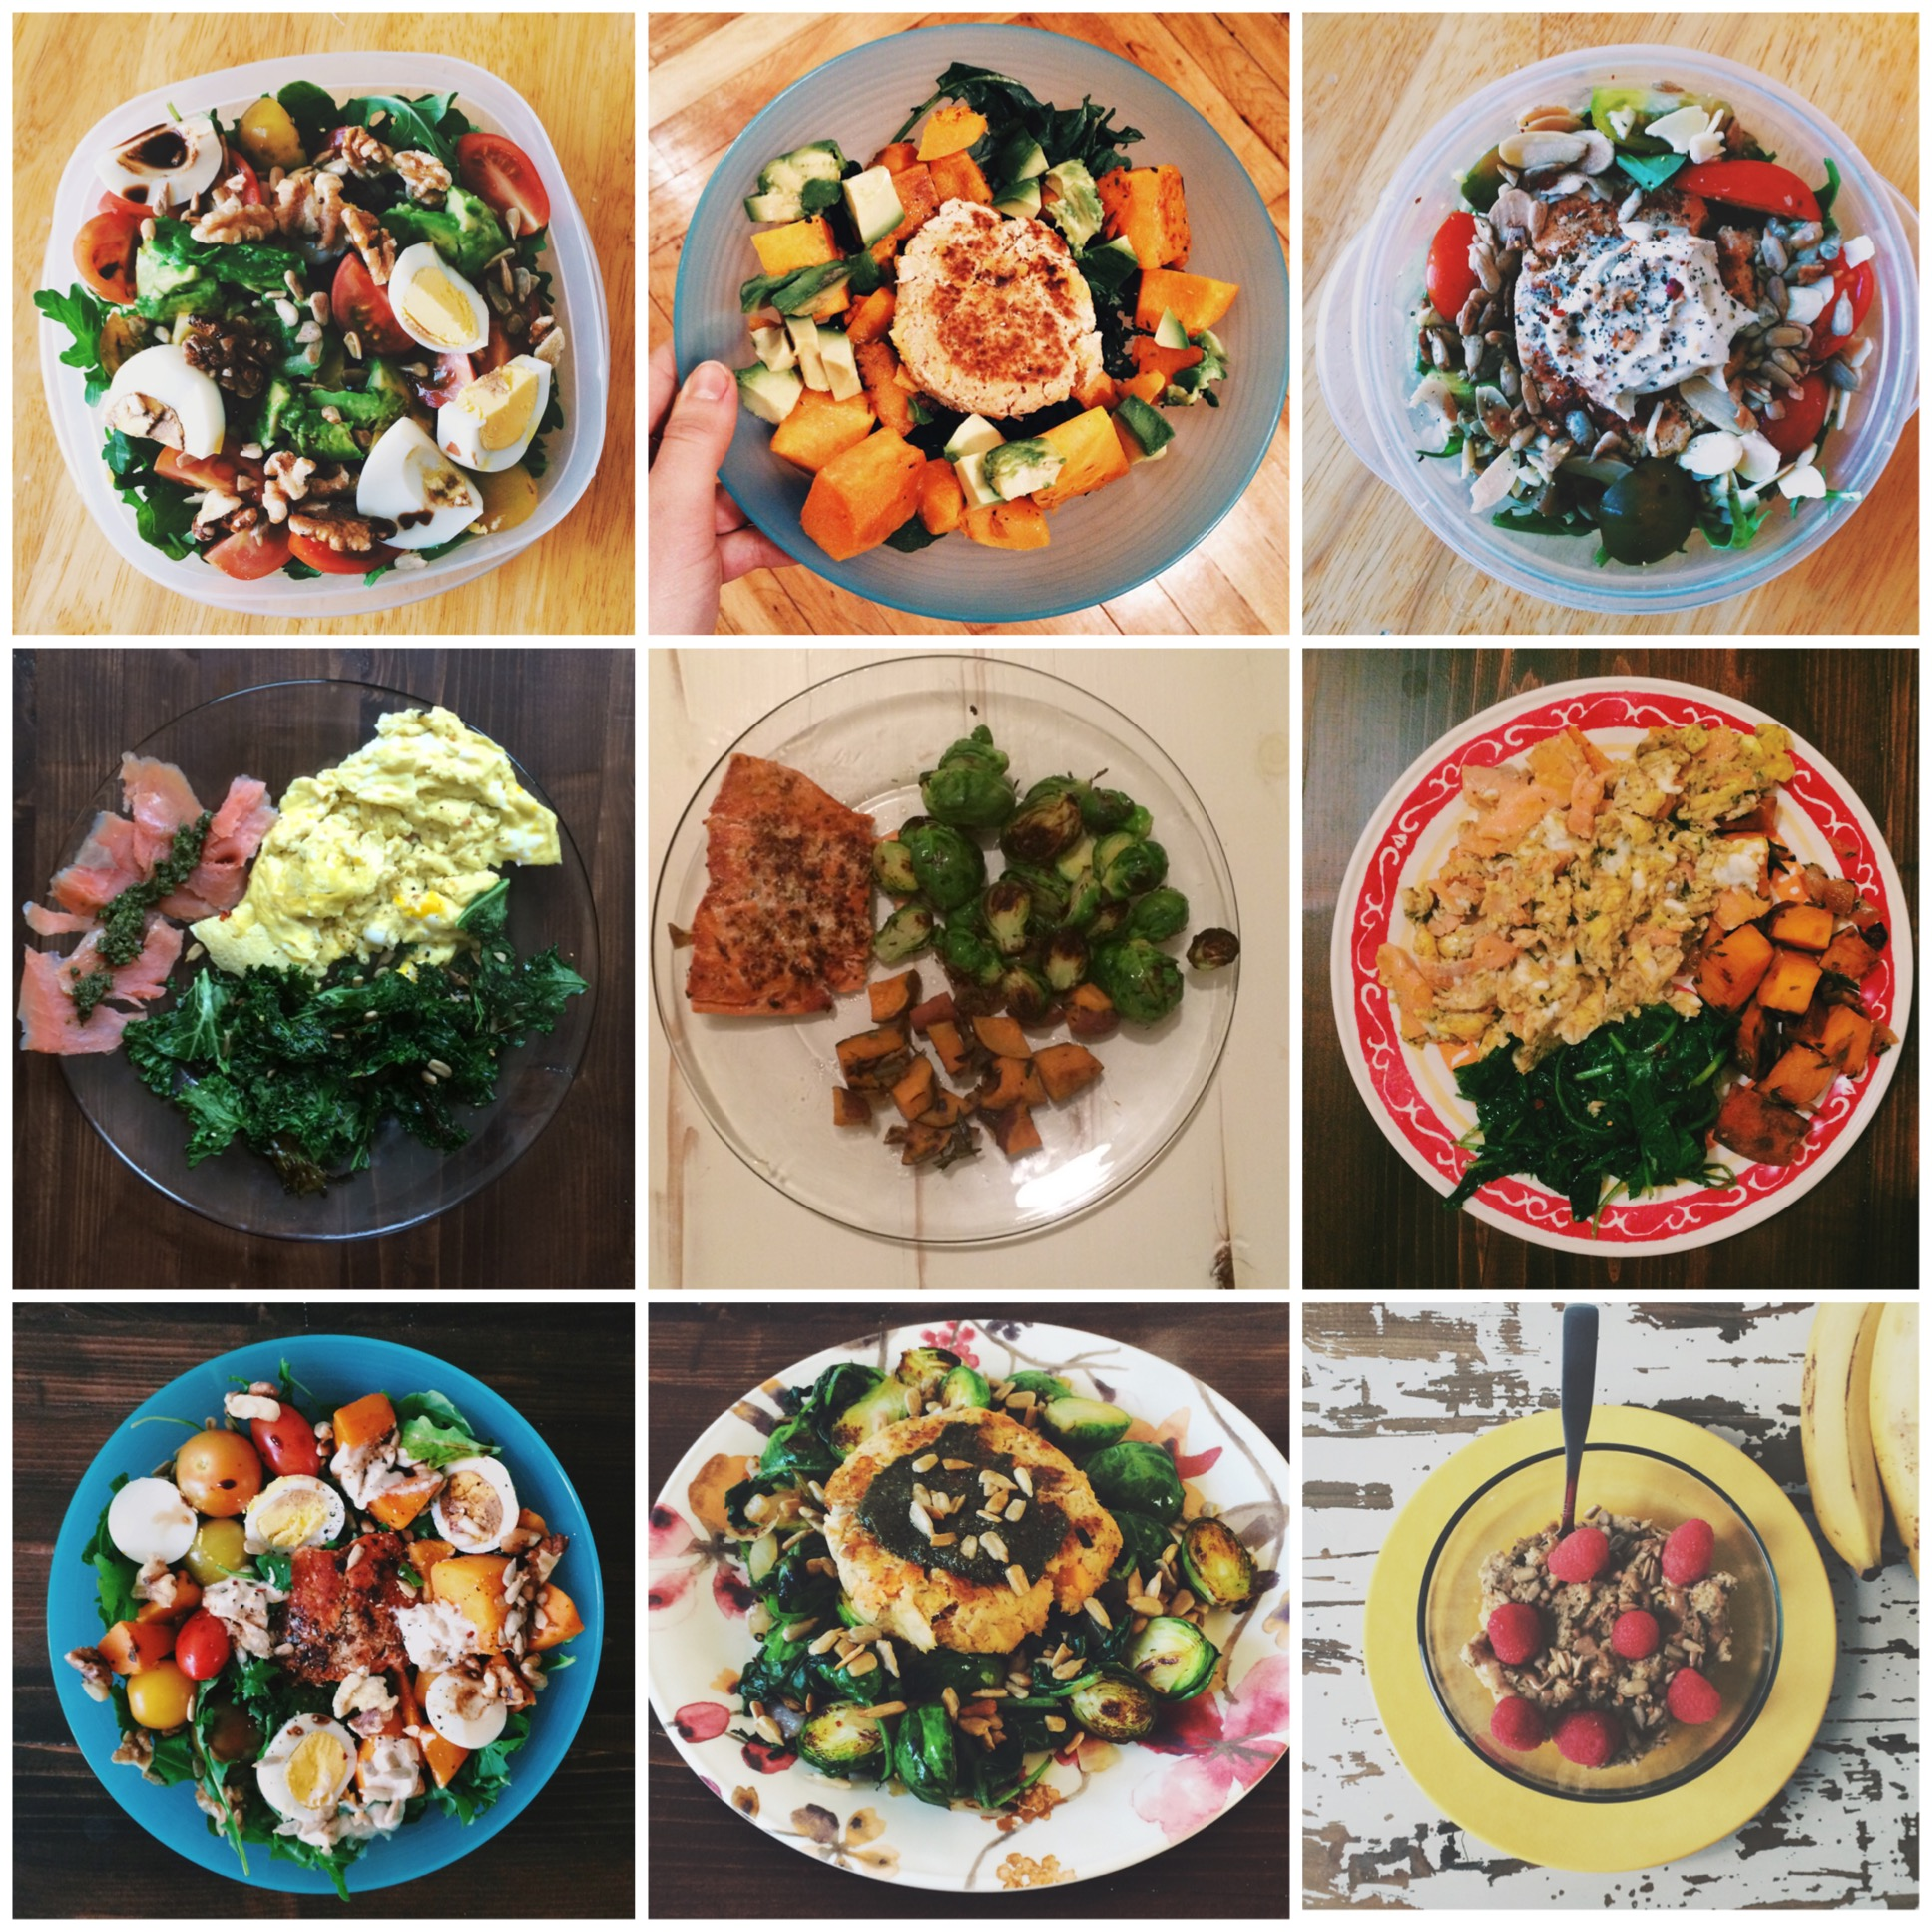 Week 1 of the Whole 30: What I Ate and How I Felt